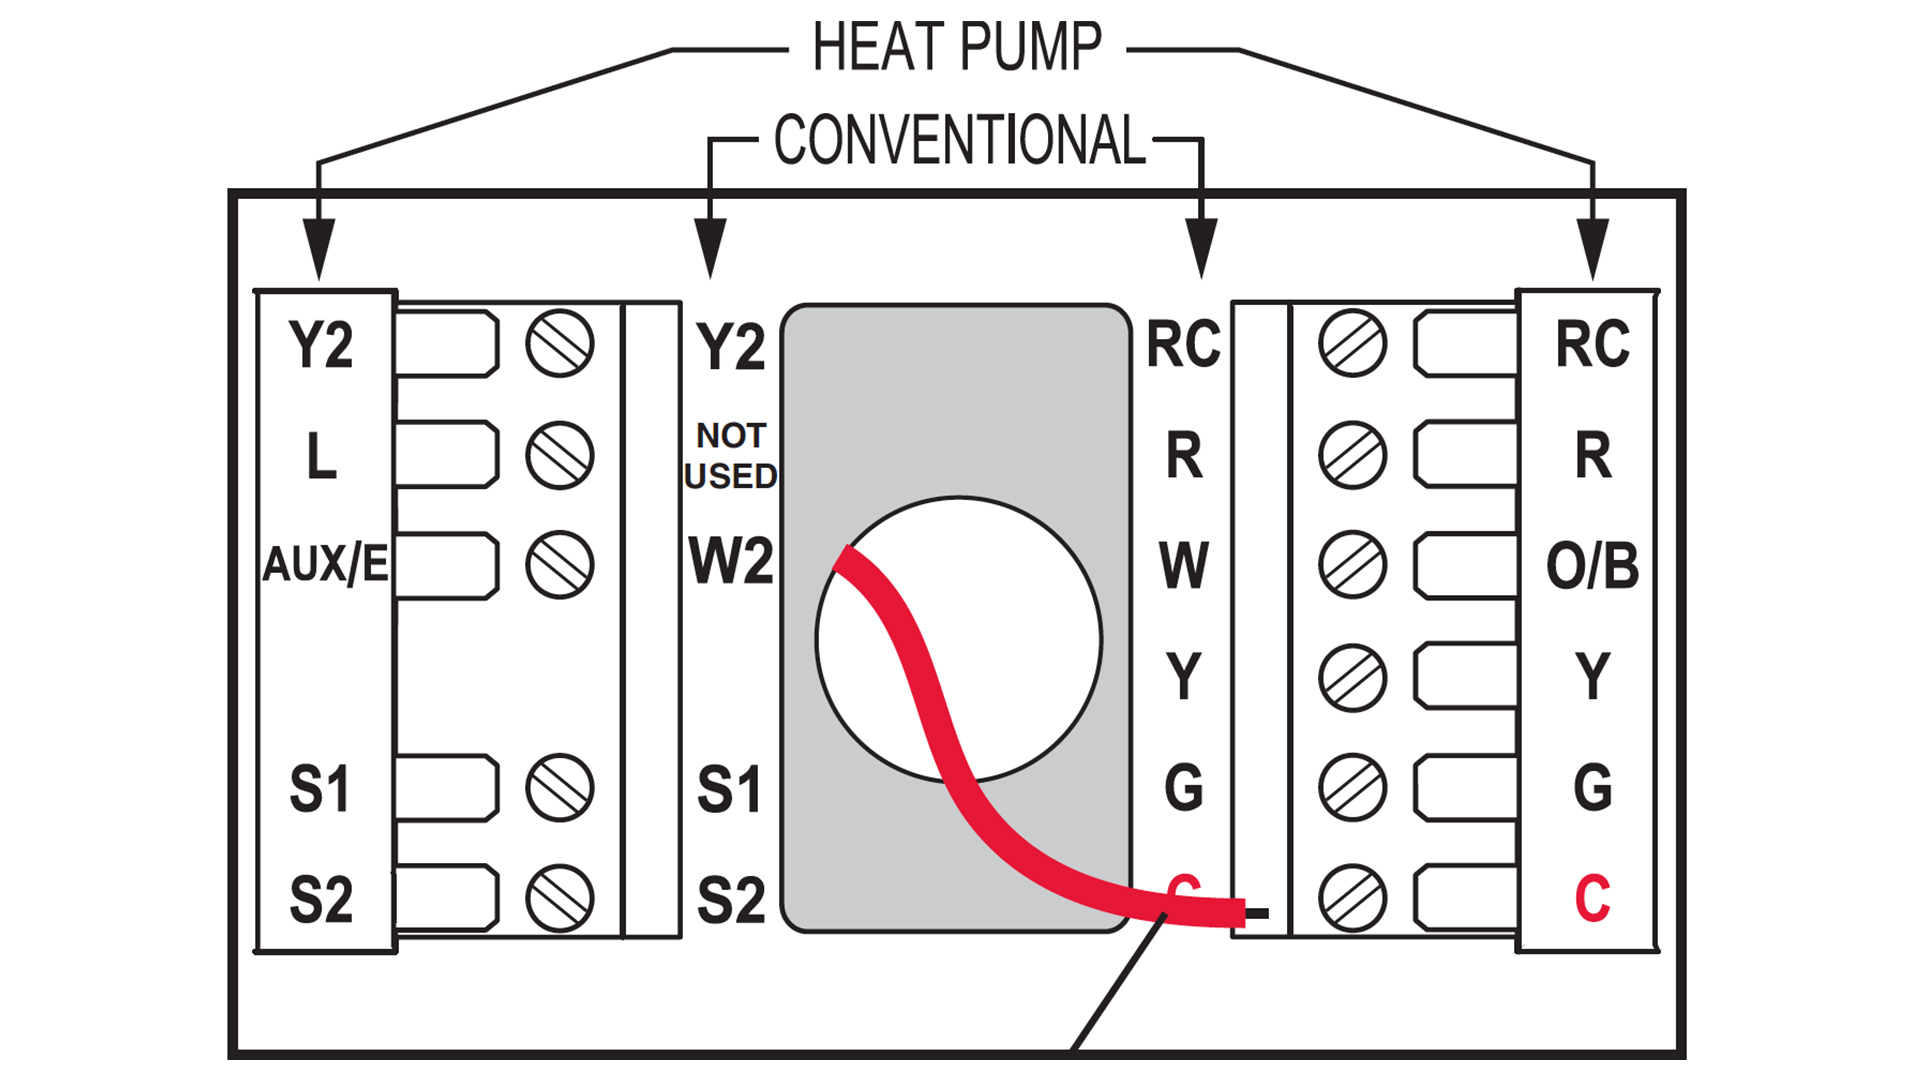 Trane Heat Pumps Thermostat Wiring | Manual E-Books - Nest Heat Pump With Electric Backup Wiring Diagram